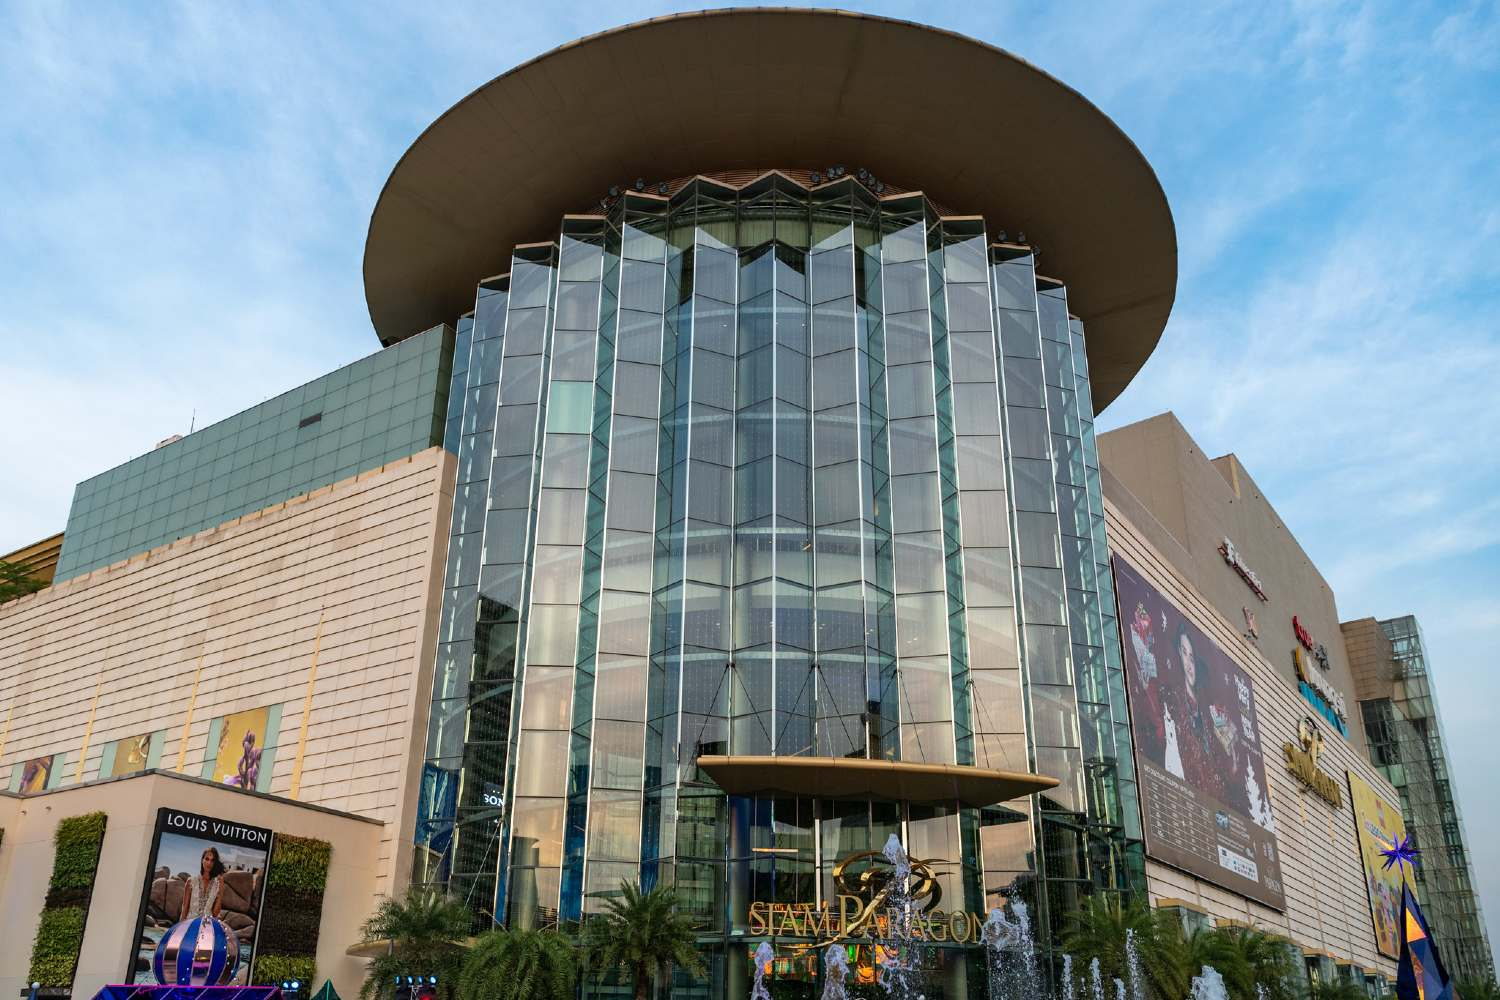 The front side of Siam Paragon